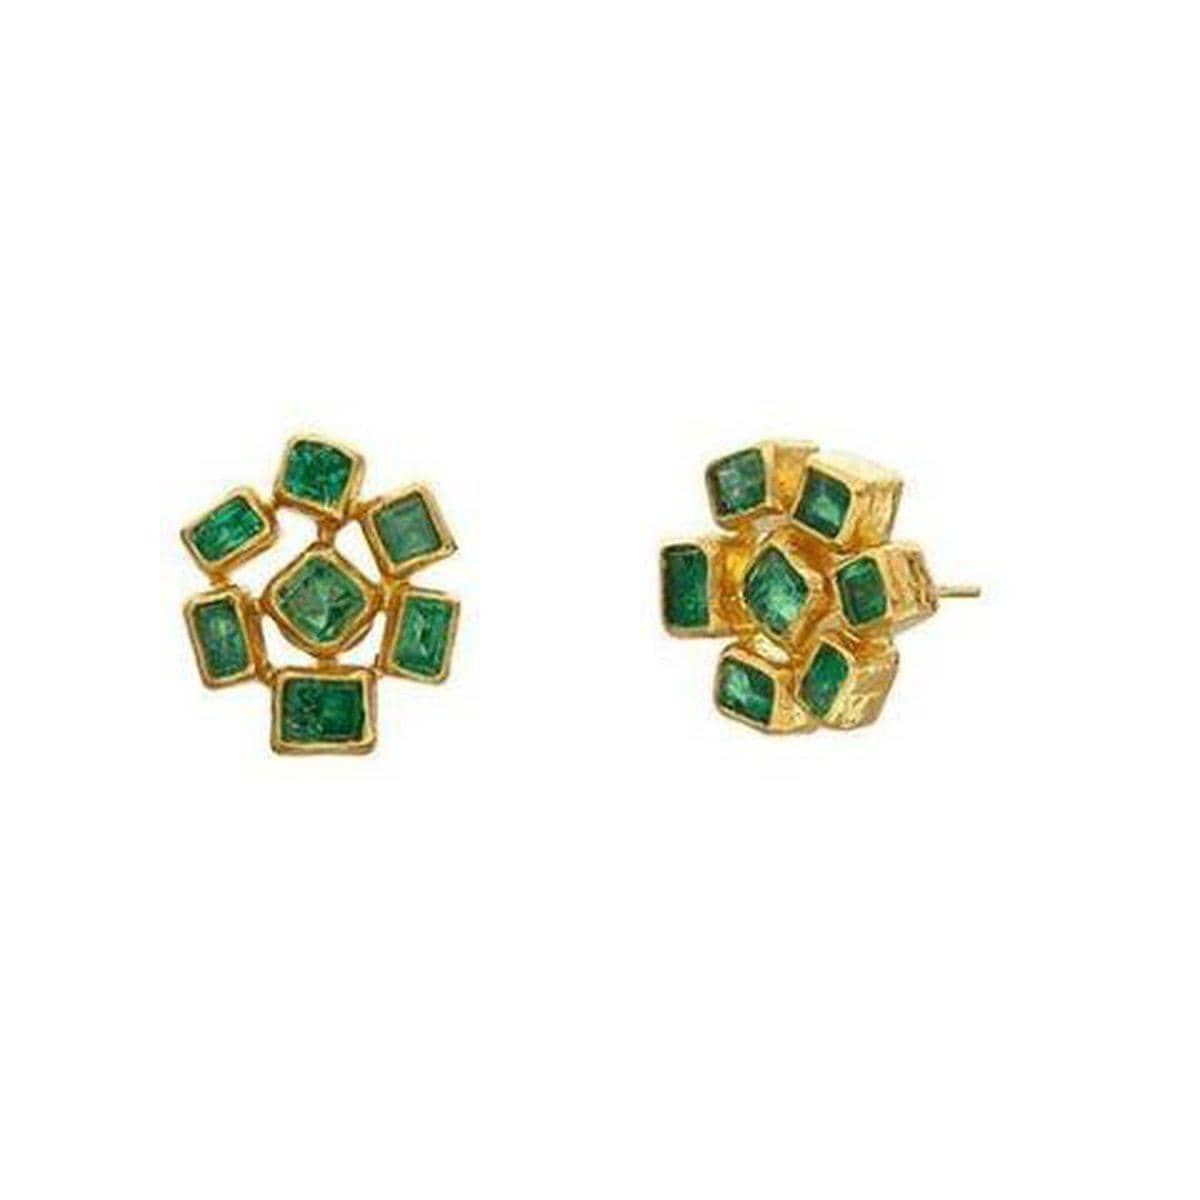 Rainbow 24K Gold Emerald Earrings - E-LE-7CEM-CLS15-GURHAN-Renee Taylor Gallery